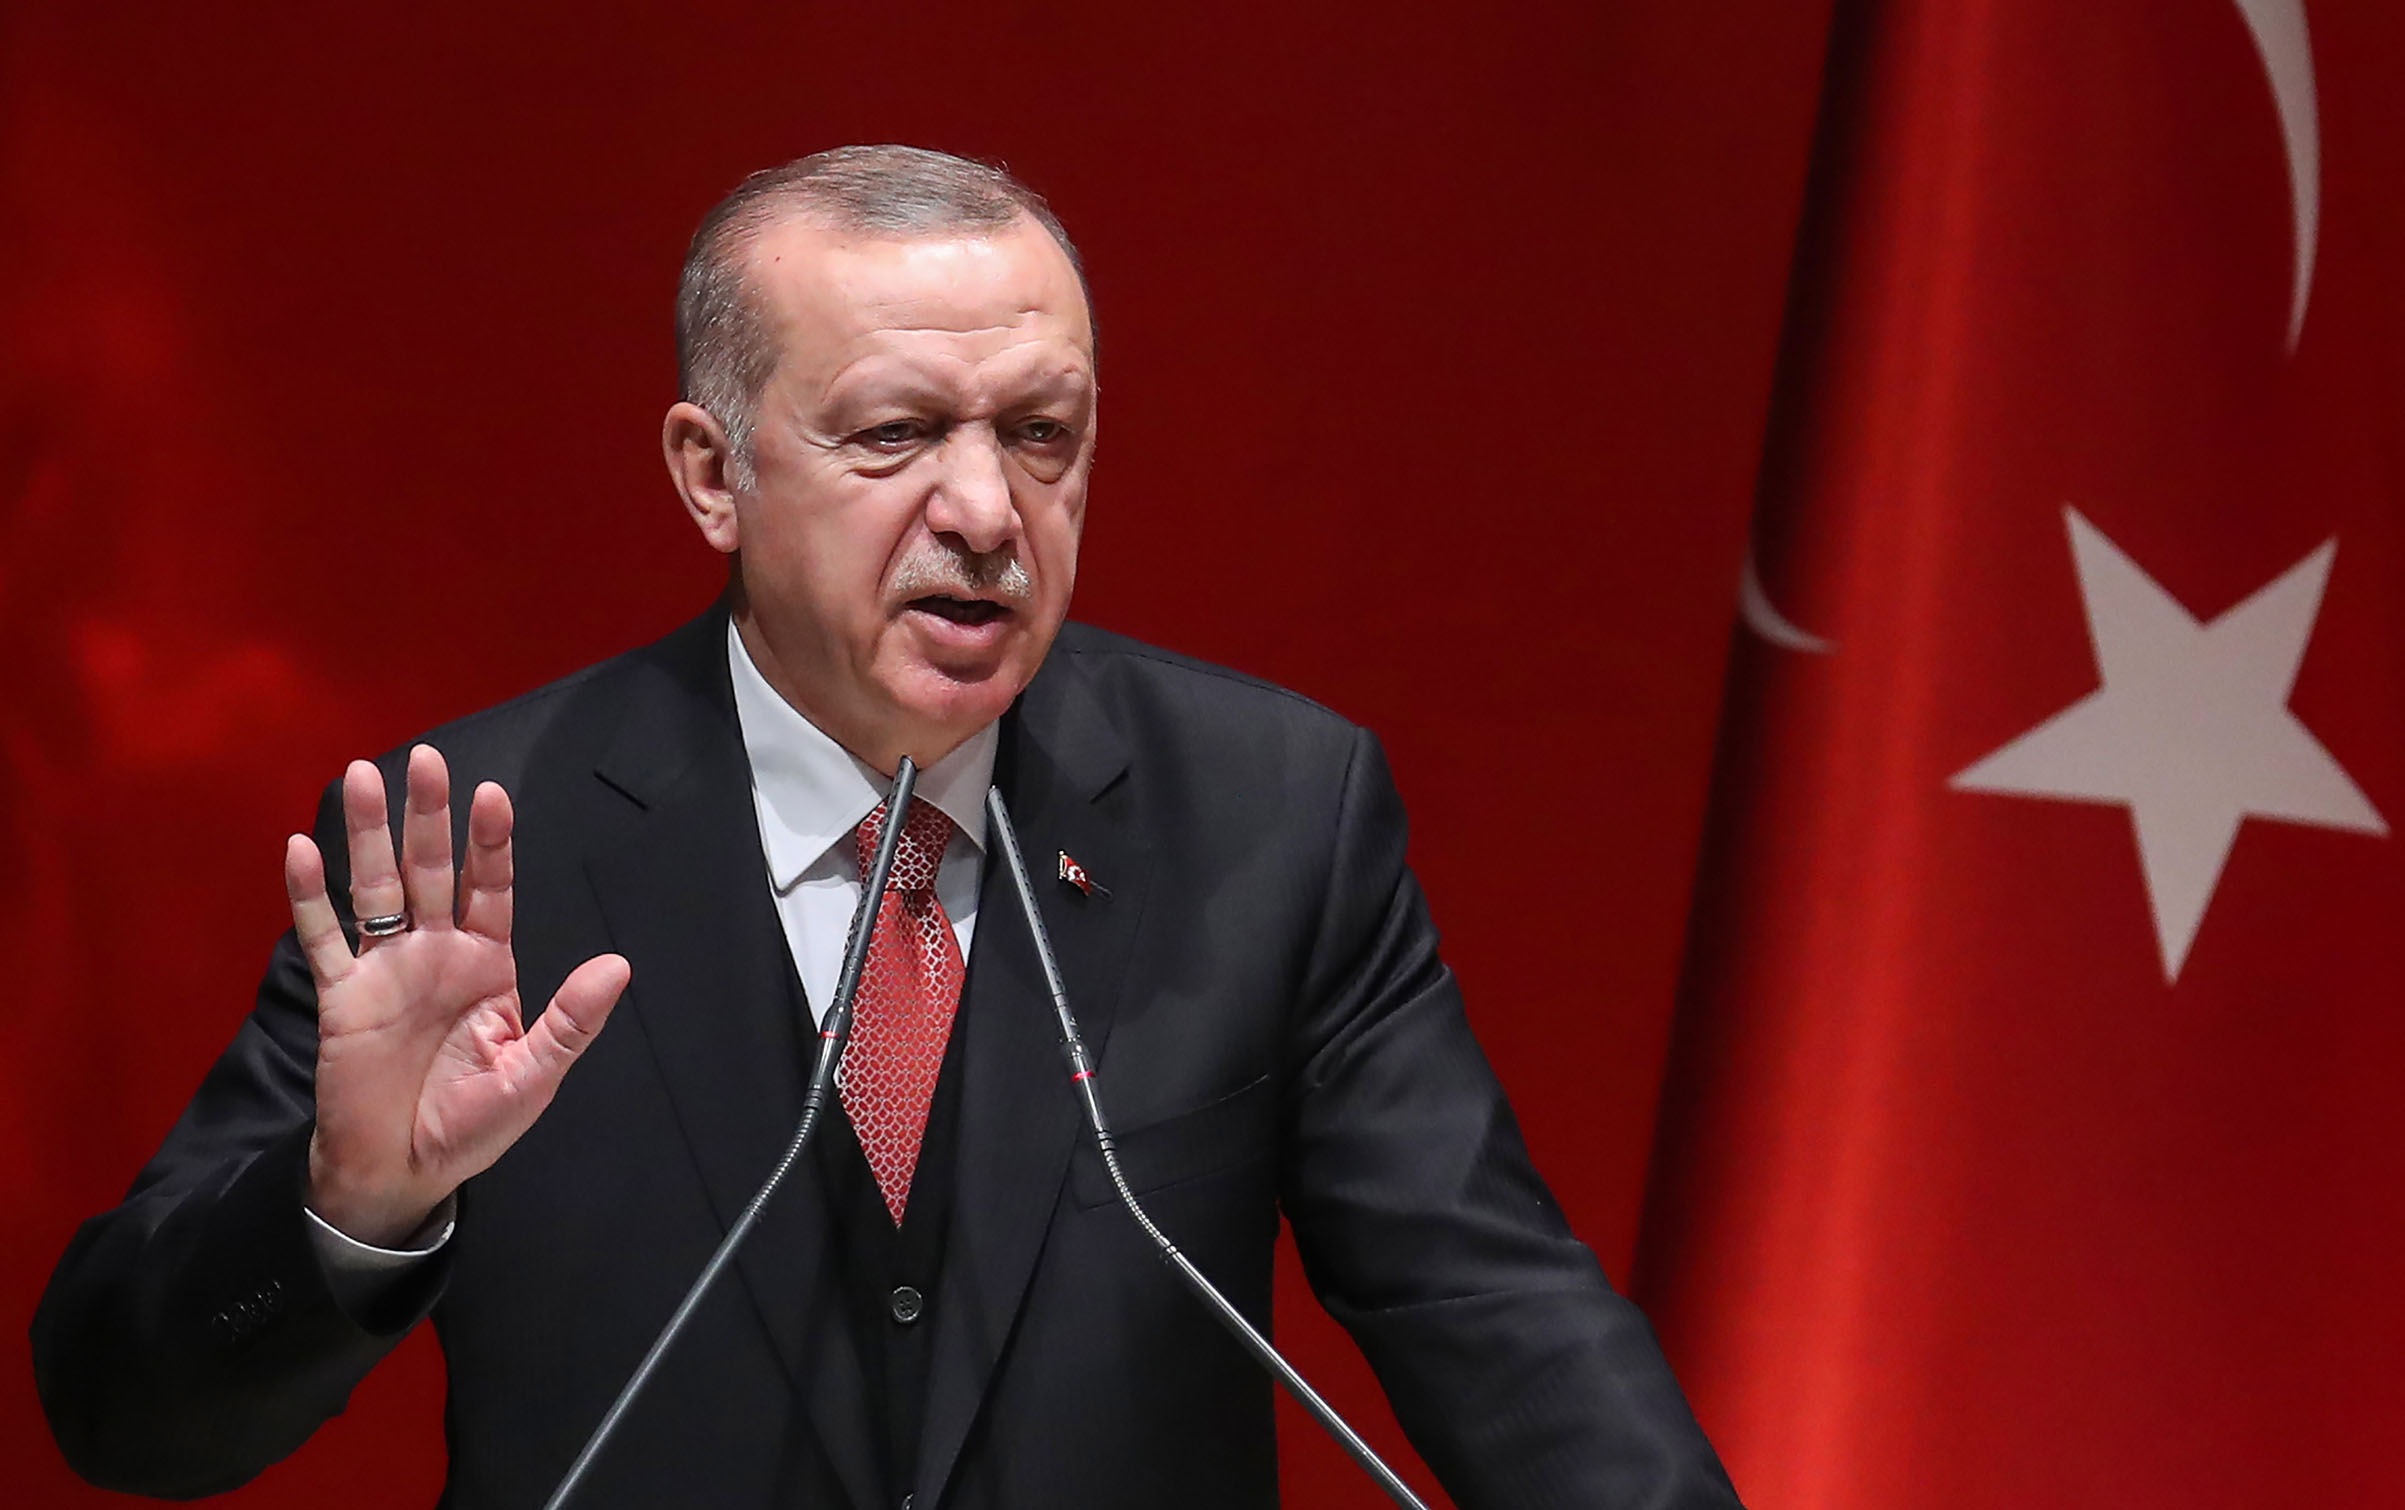 Turkish President Recep Tayyip Erdogan addresses a meeting of provincial election officials at the headquarters of his ruling Justice and Development (AK) Party in Ankara on January 29, 2019. (Photo by Adem ALTAN / AFP)        (Photo credit should read ADEM ALTAN/AFP/Getty Images)